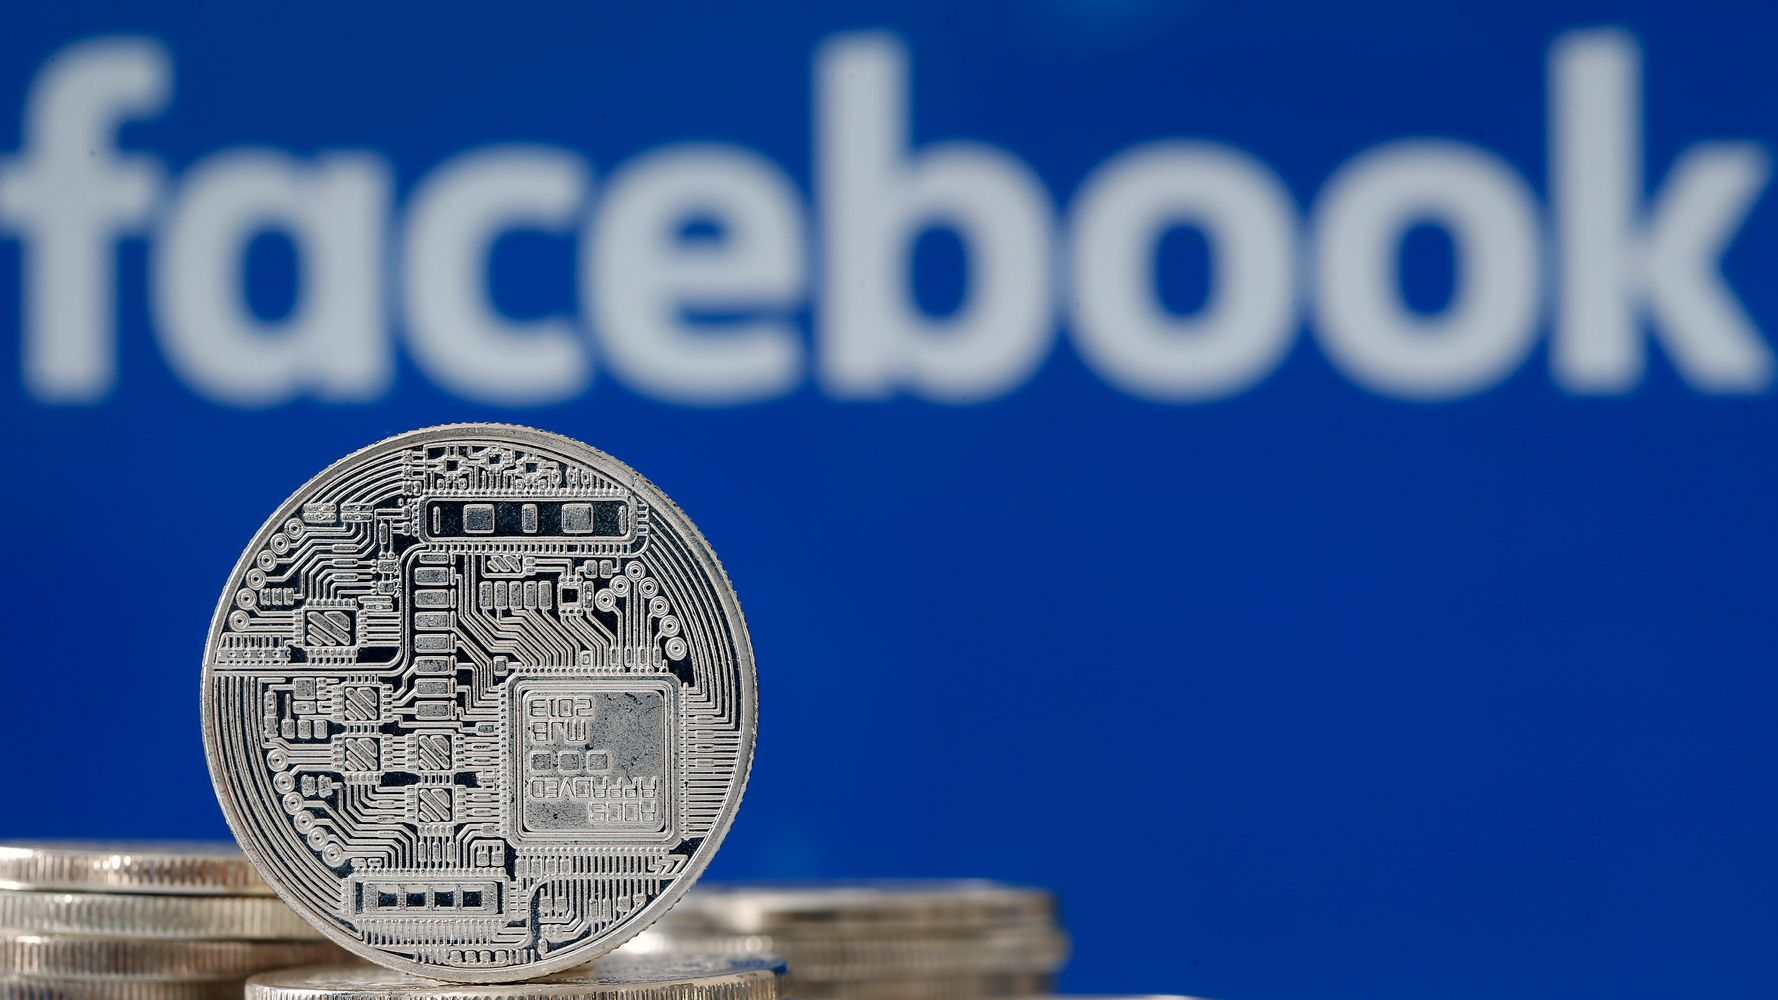 Everything You Need To Know About Libra, Facebook's New